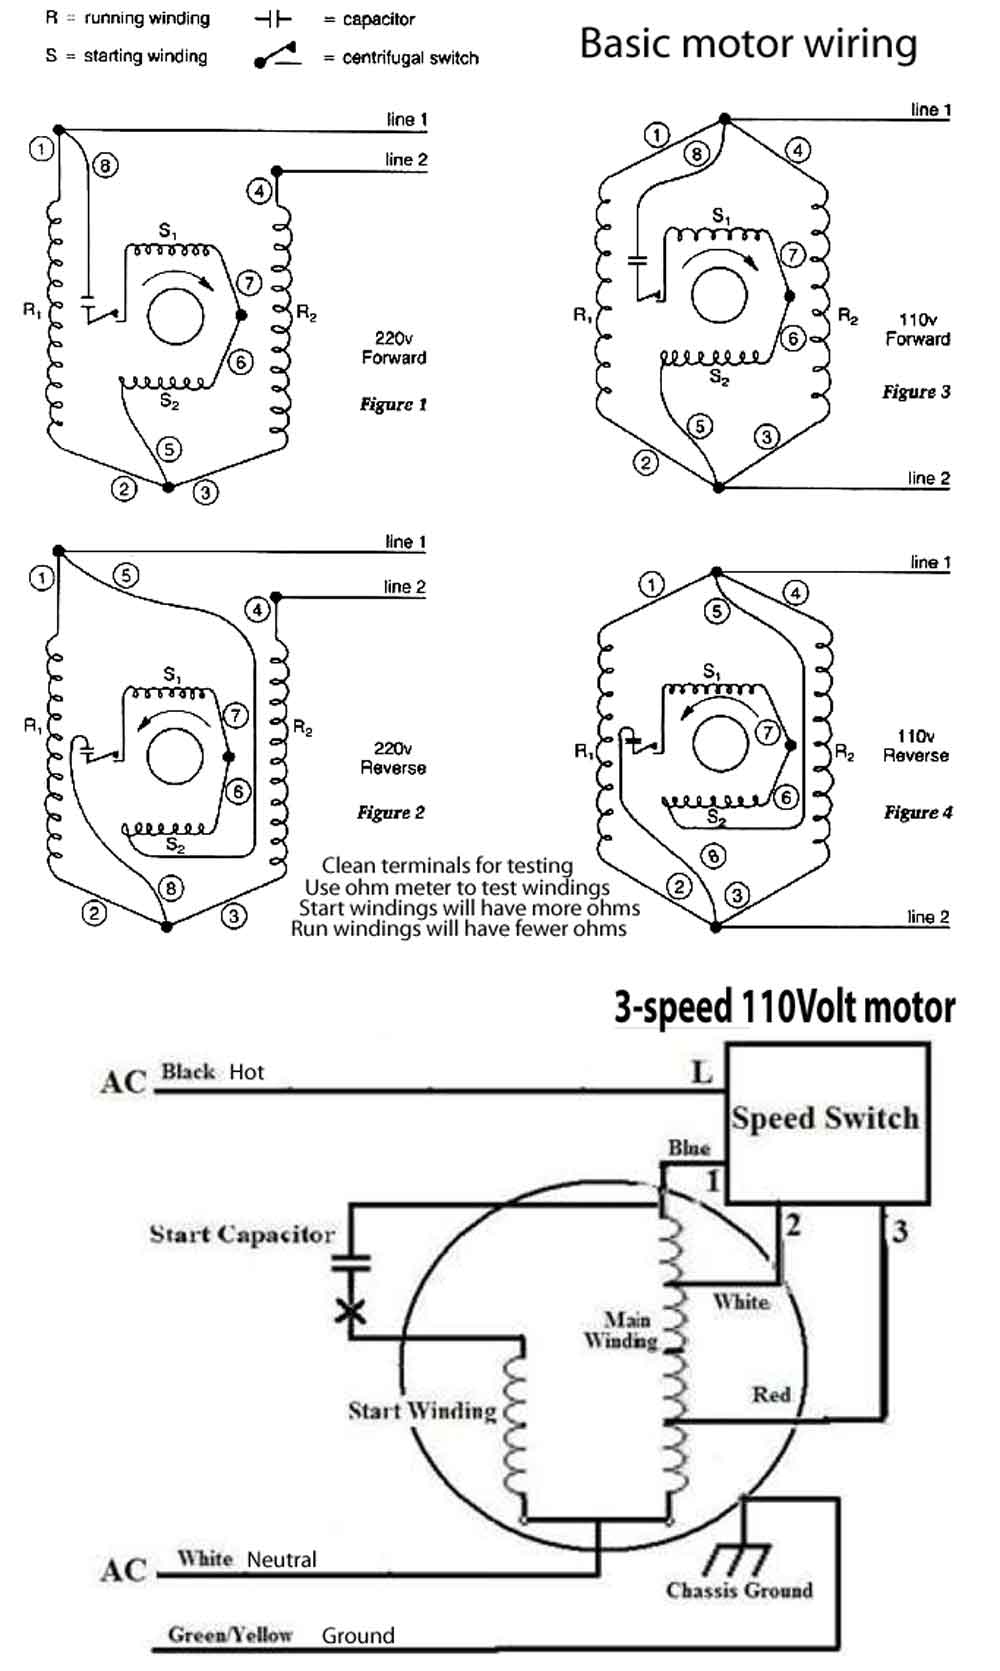 Motor wiring 500 pedestal fan wiring diagram cooling fan circuit diagram \u2022 wiring westinghouse wiring diagram at bakdesigns.co